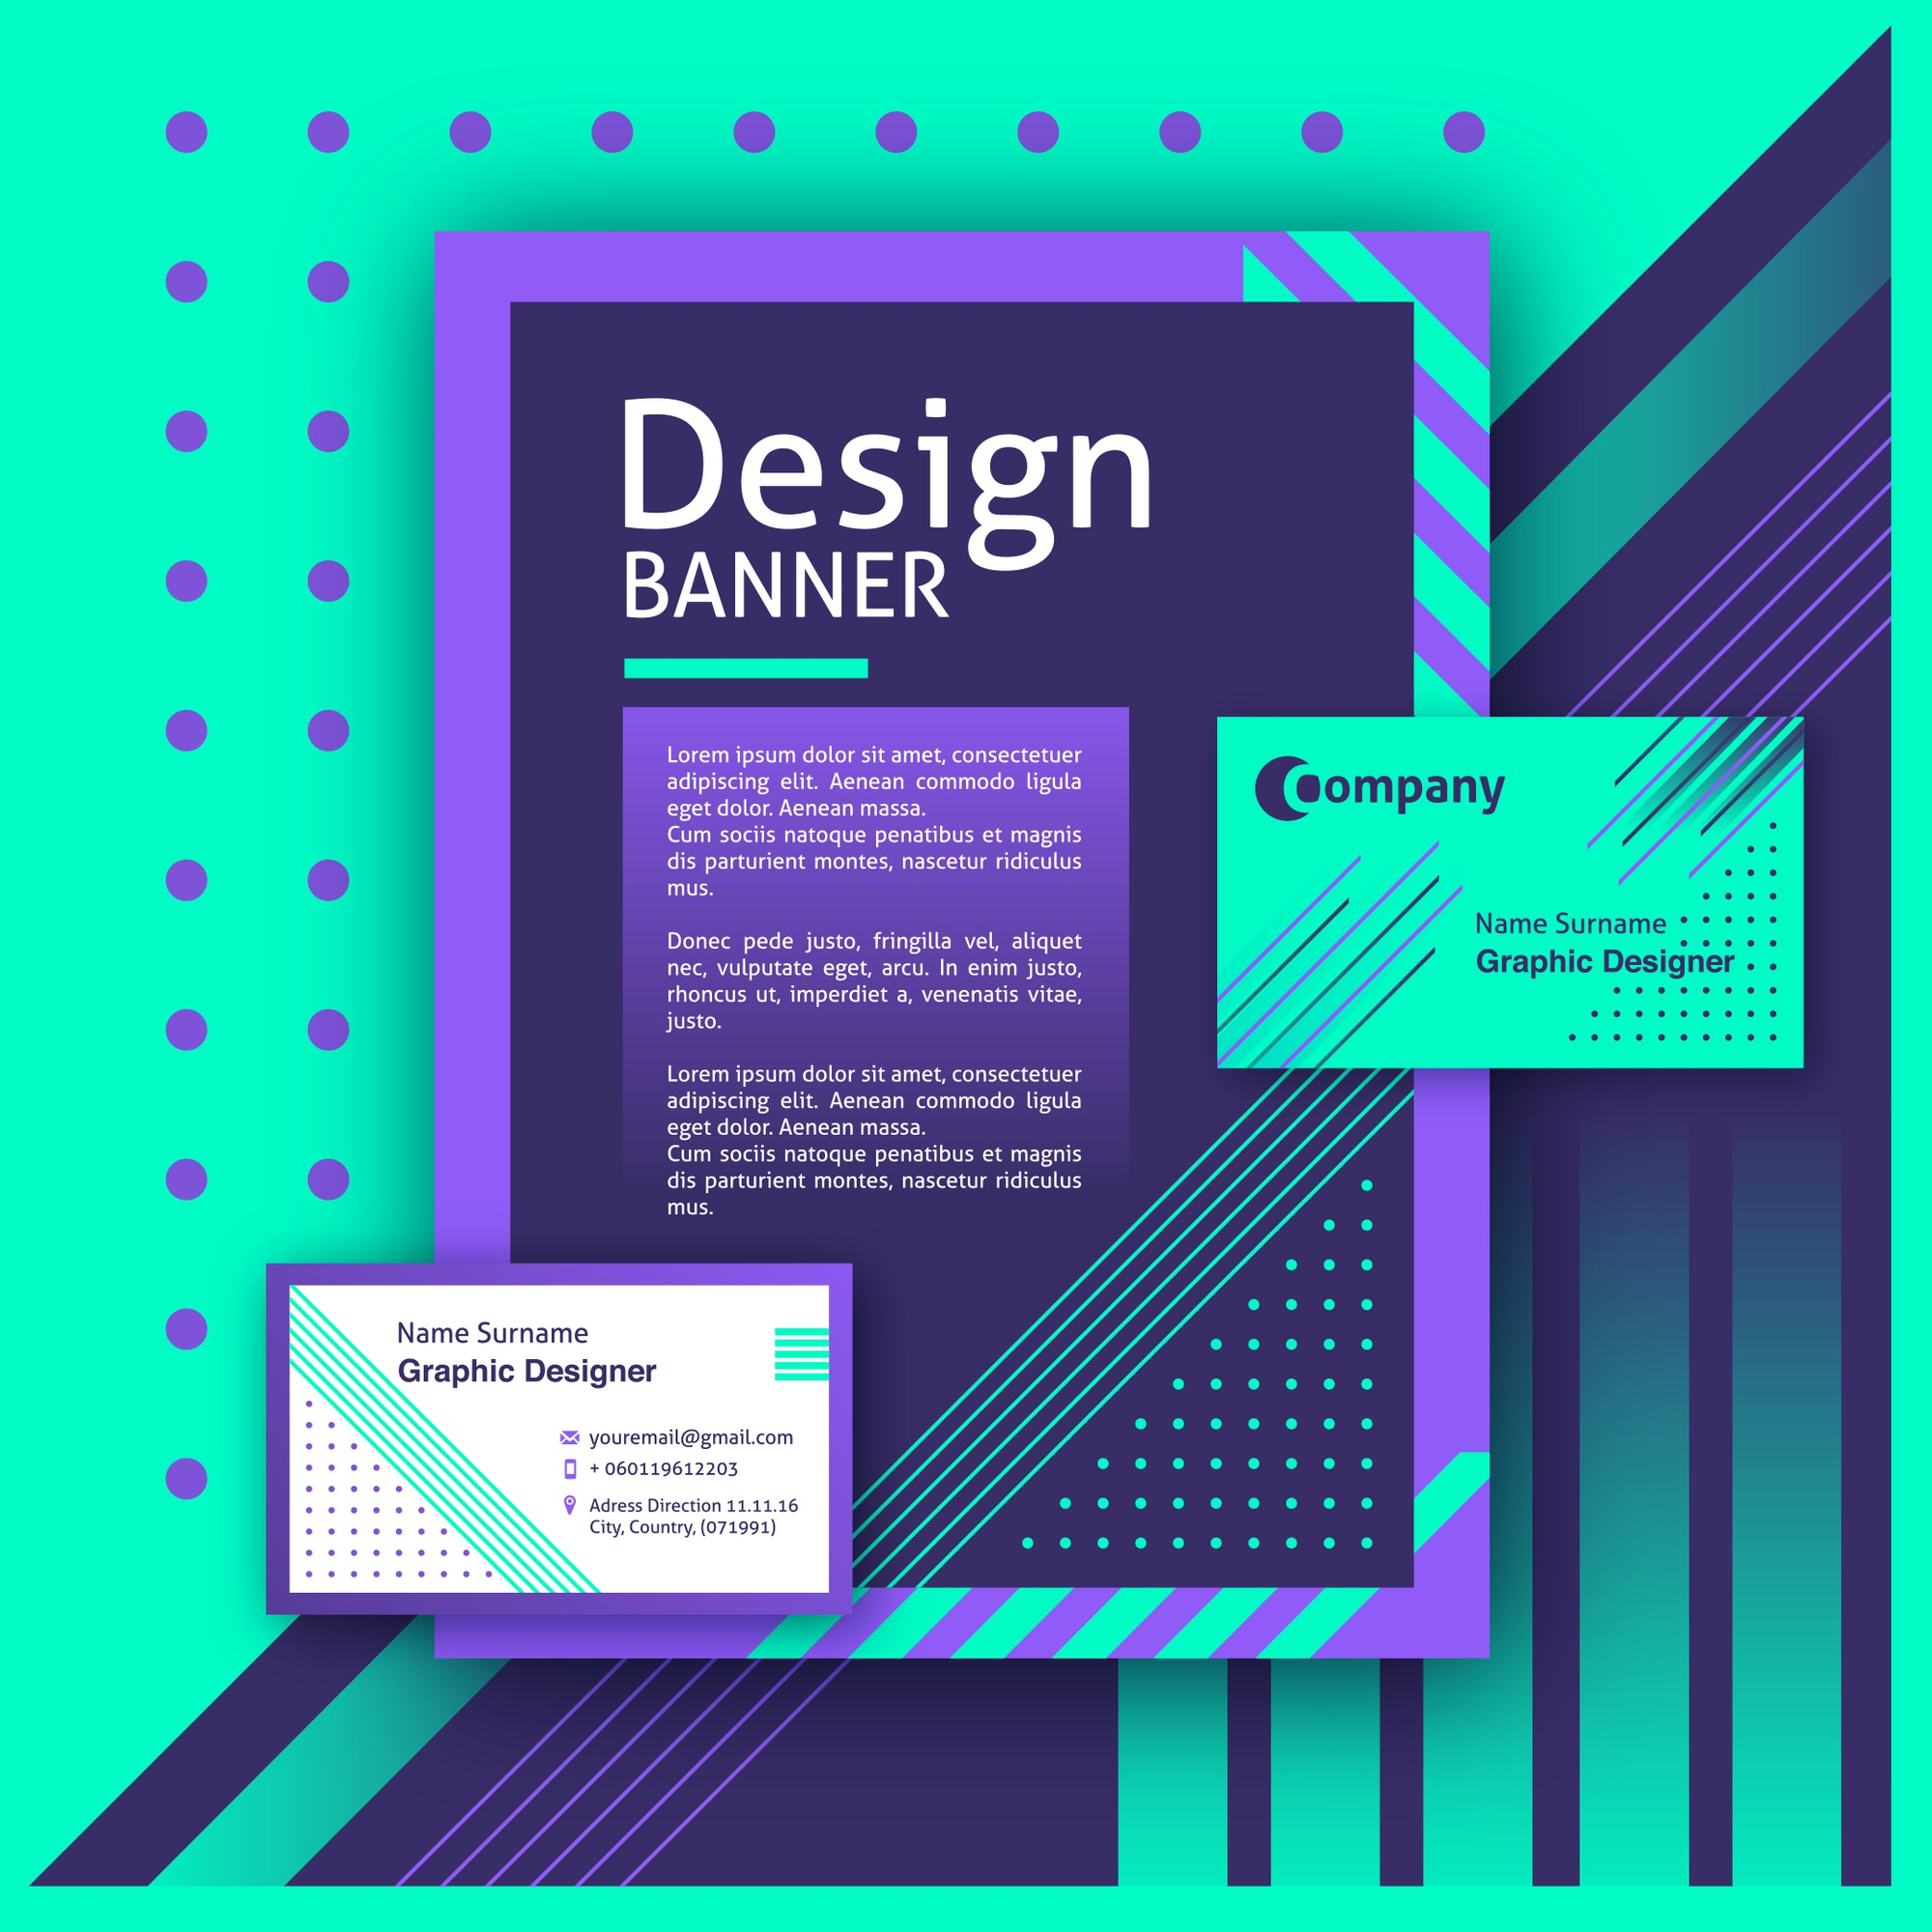 Creative design of banner and cards purple with green